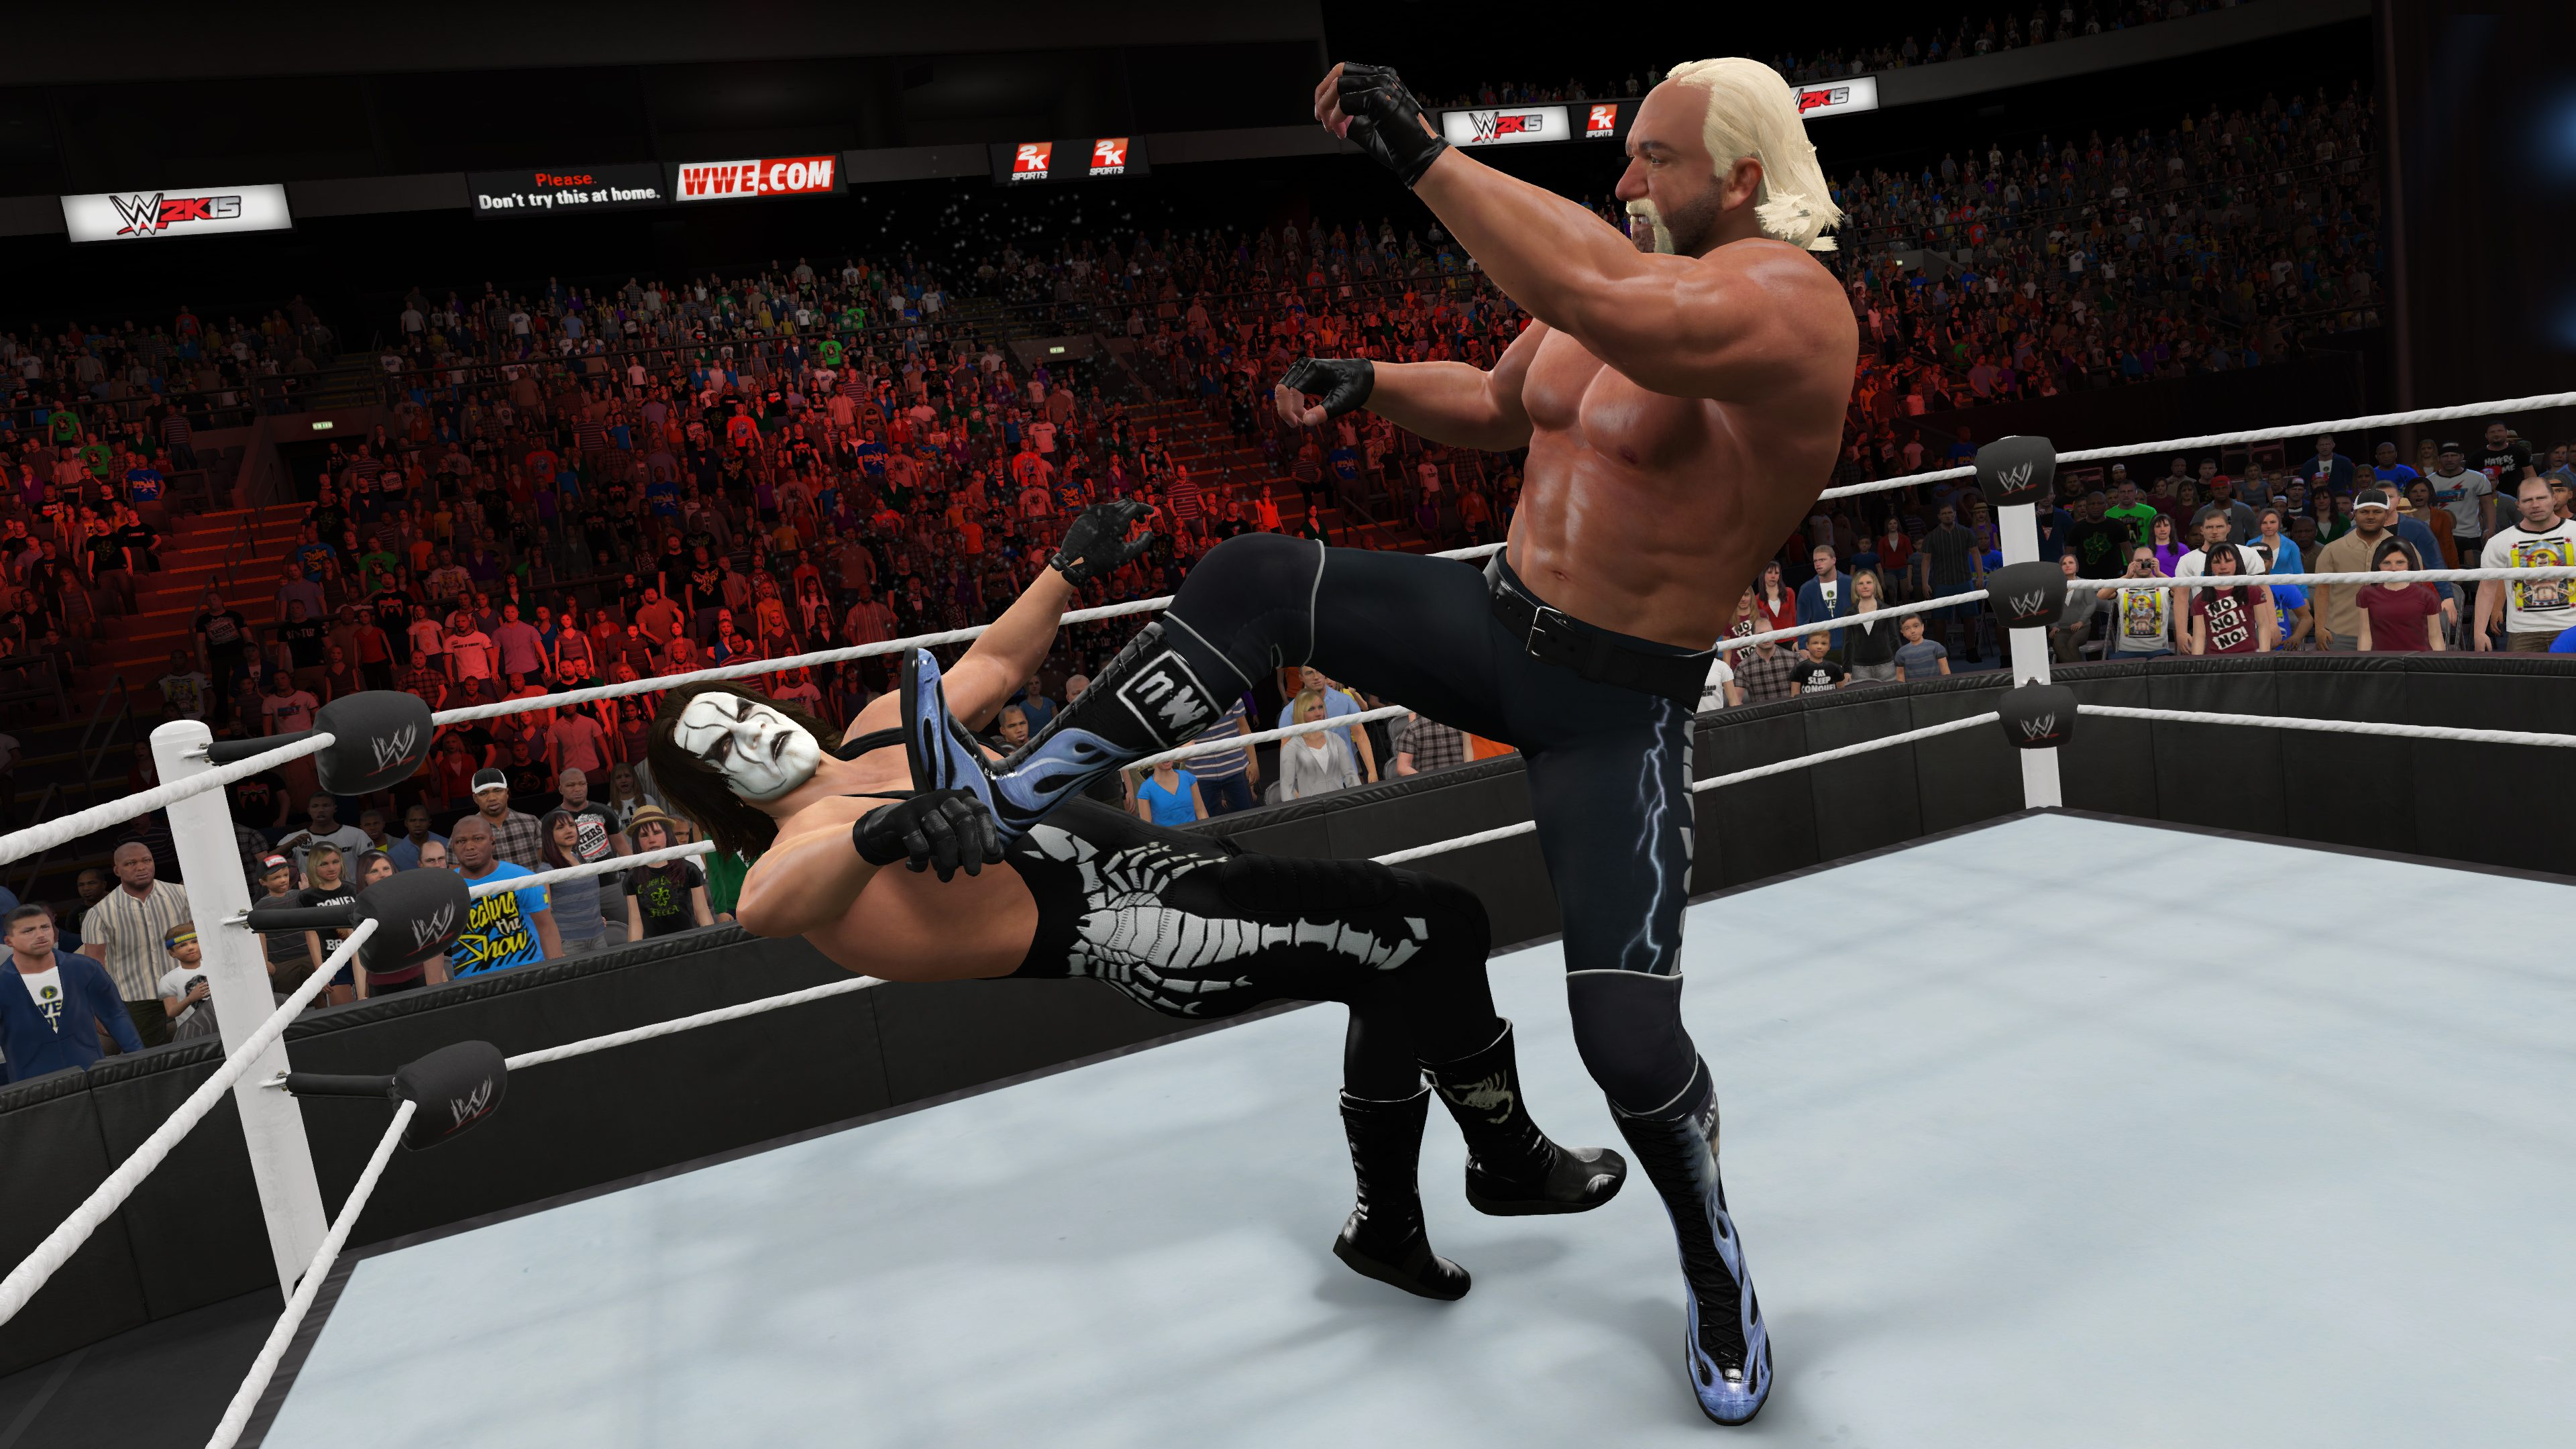 activation product key for wwe 2k15 pc